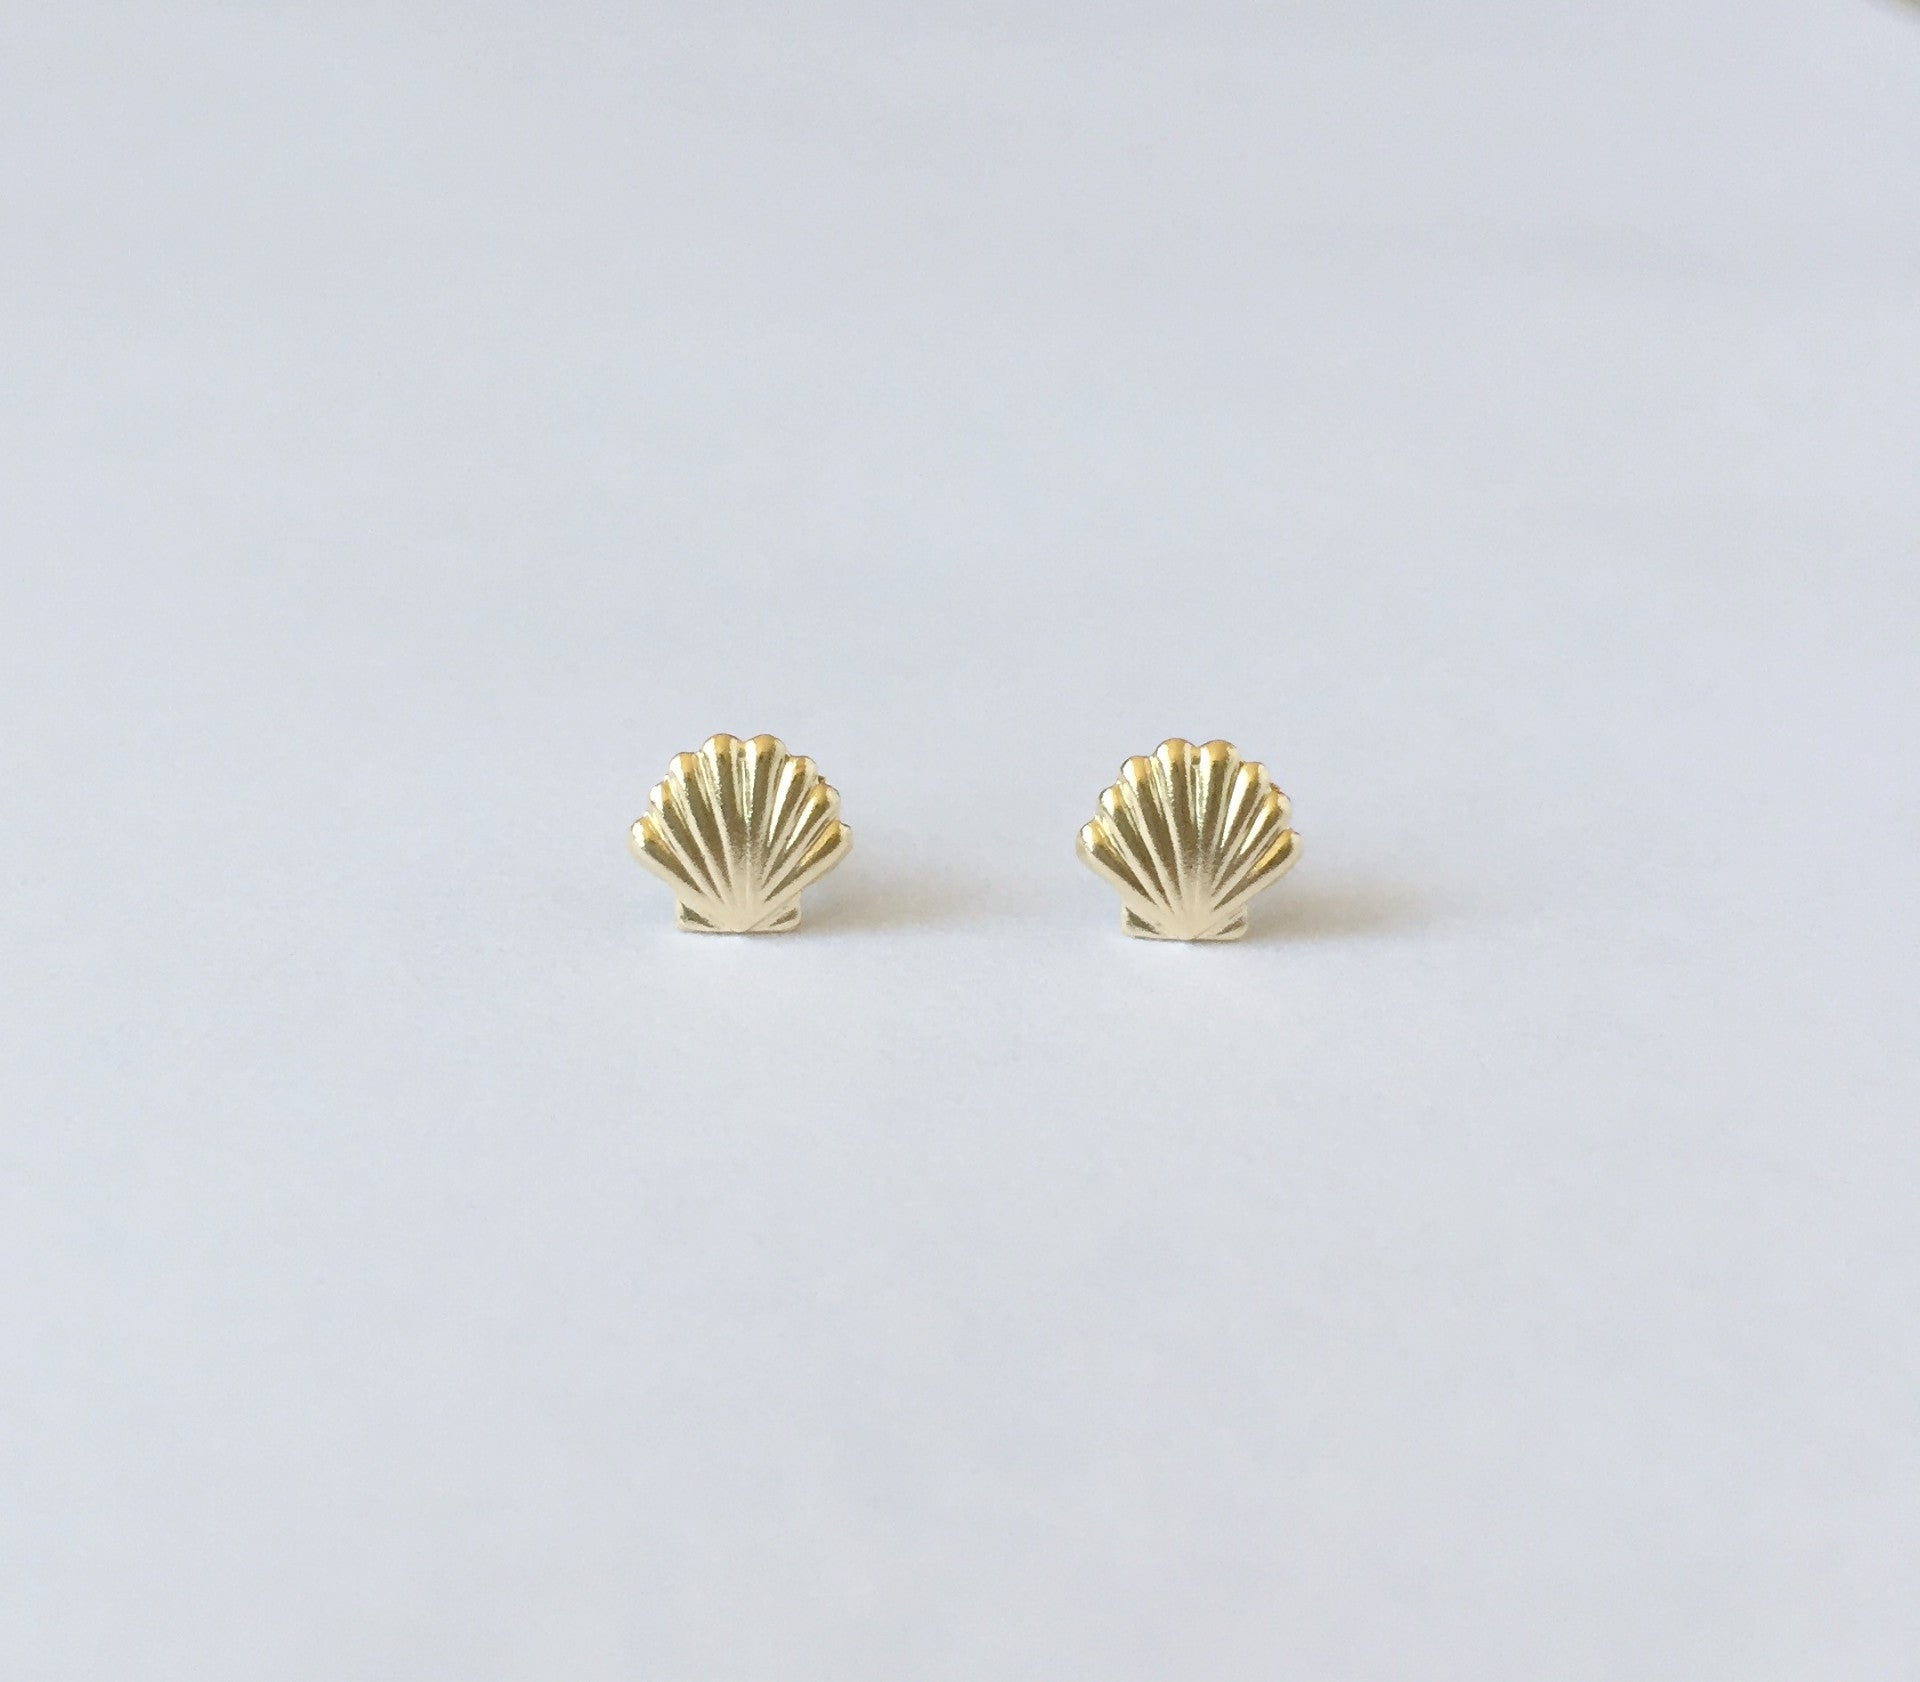 image studs star earrings and gold handmade silver tiny zoom moon stud